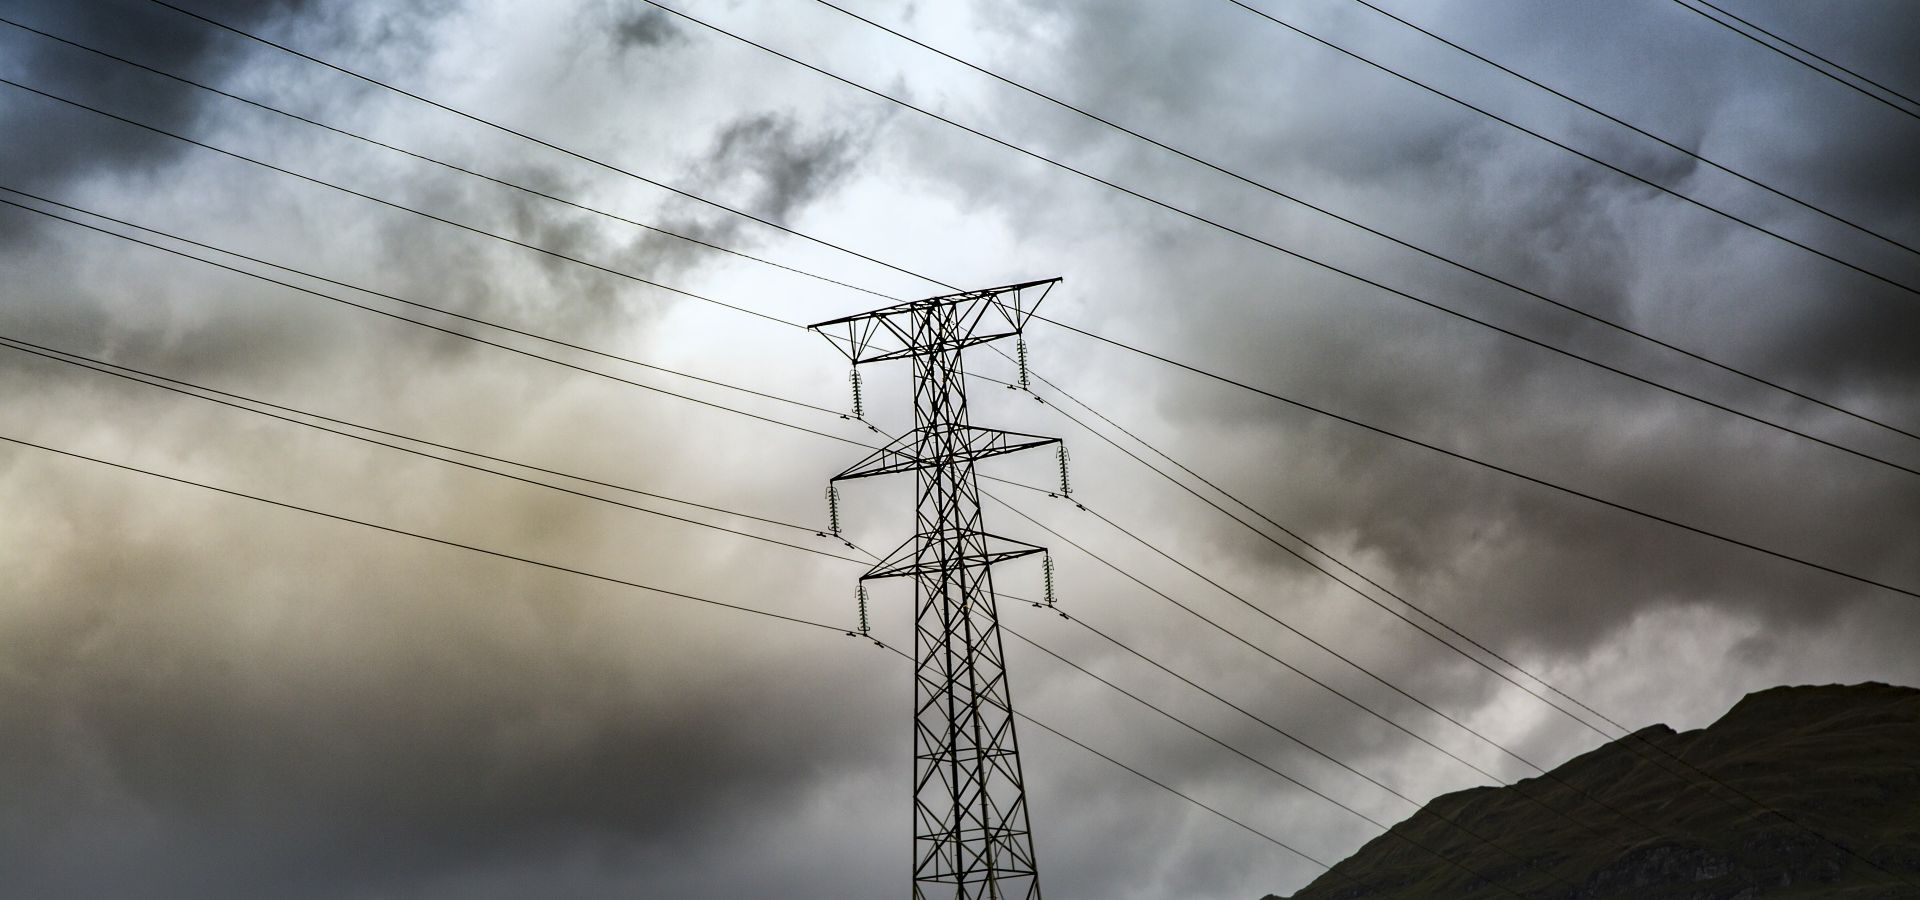 power lines in storm